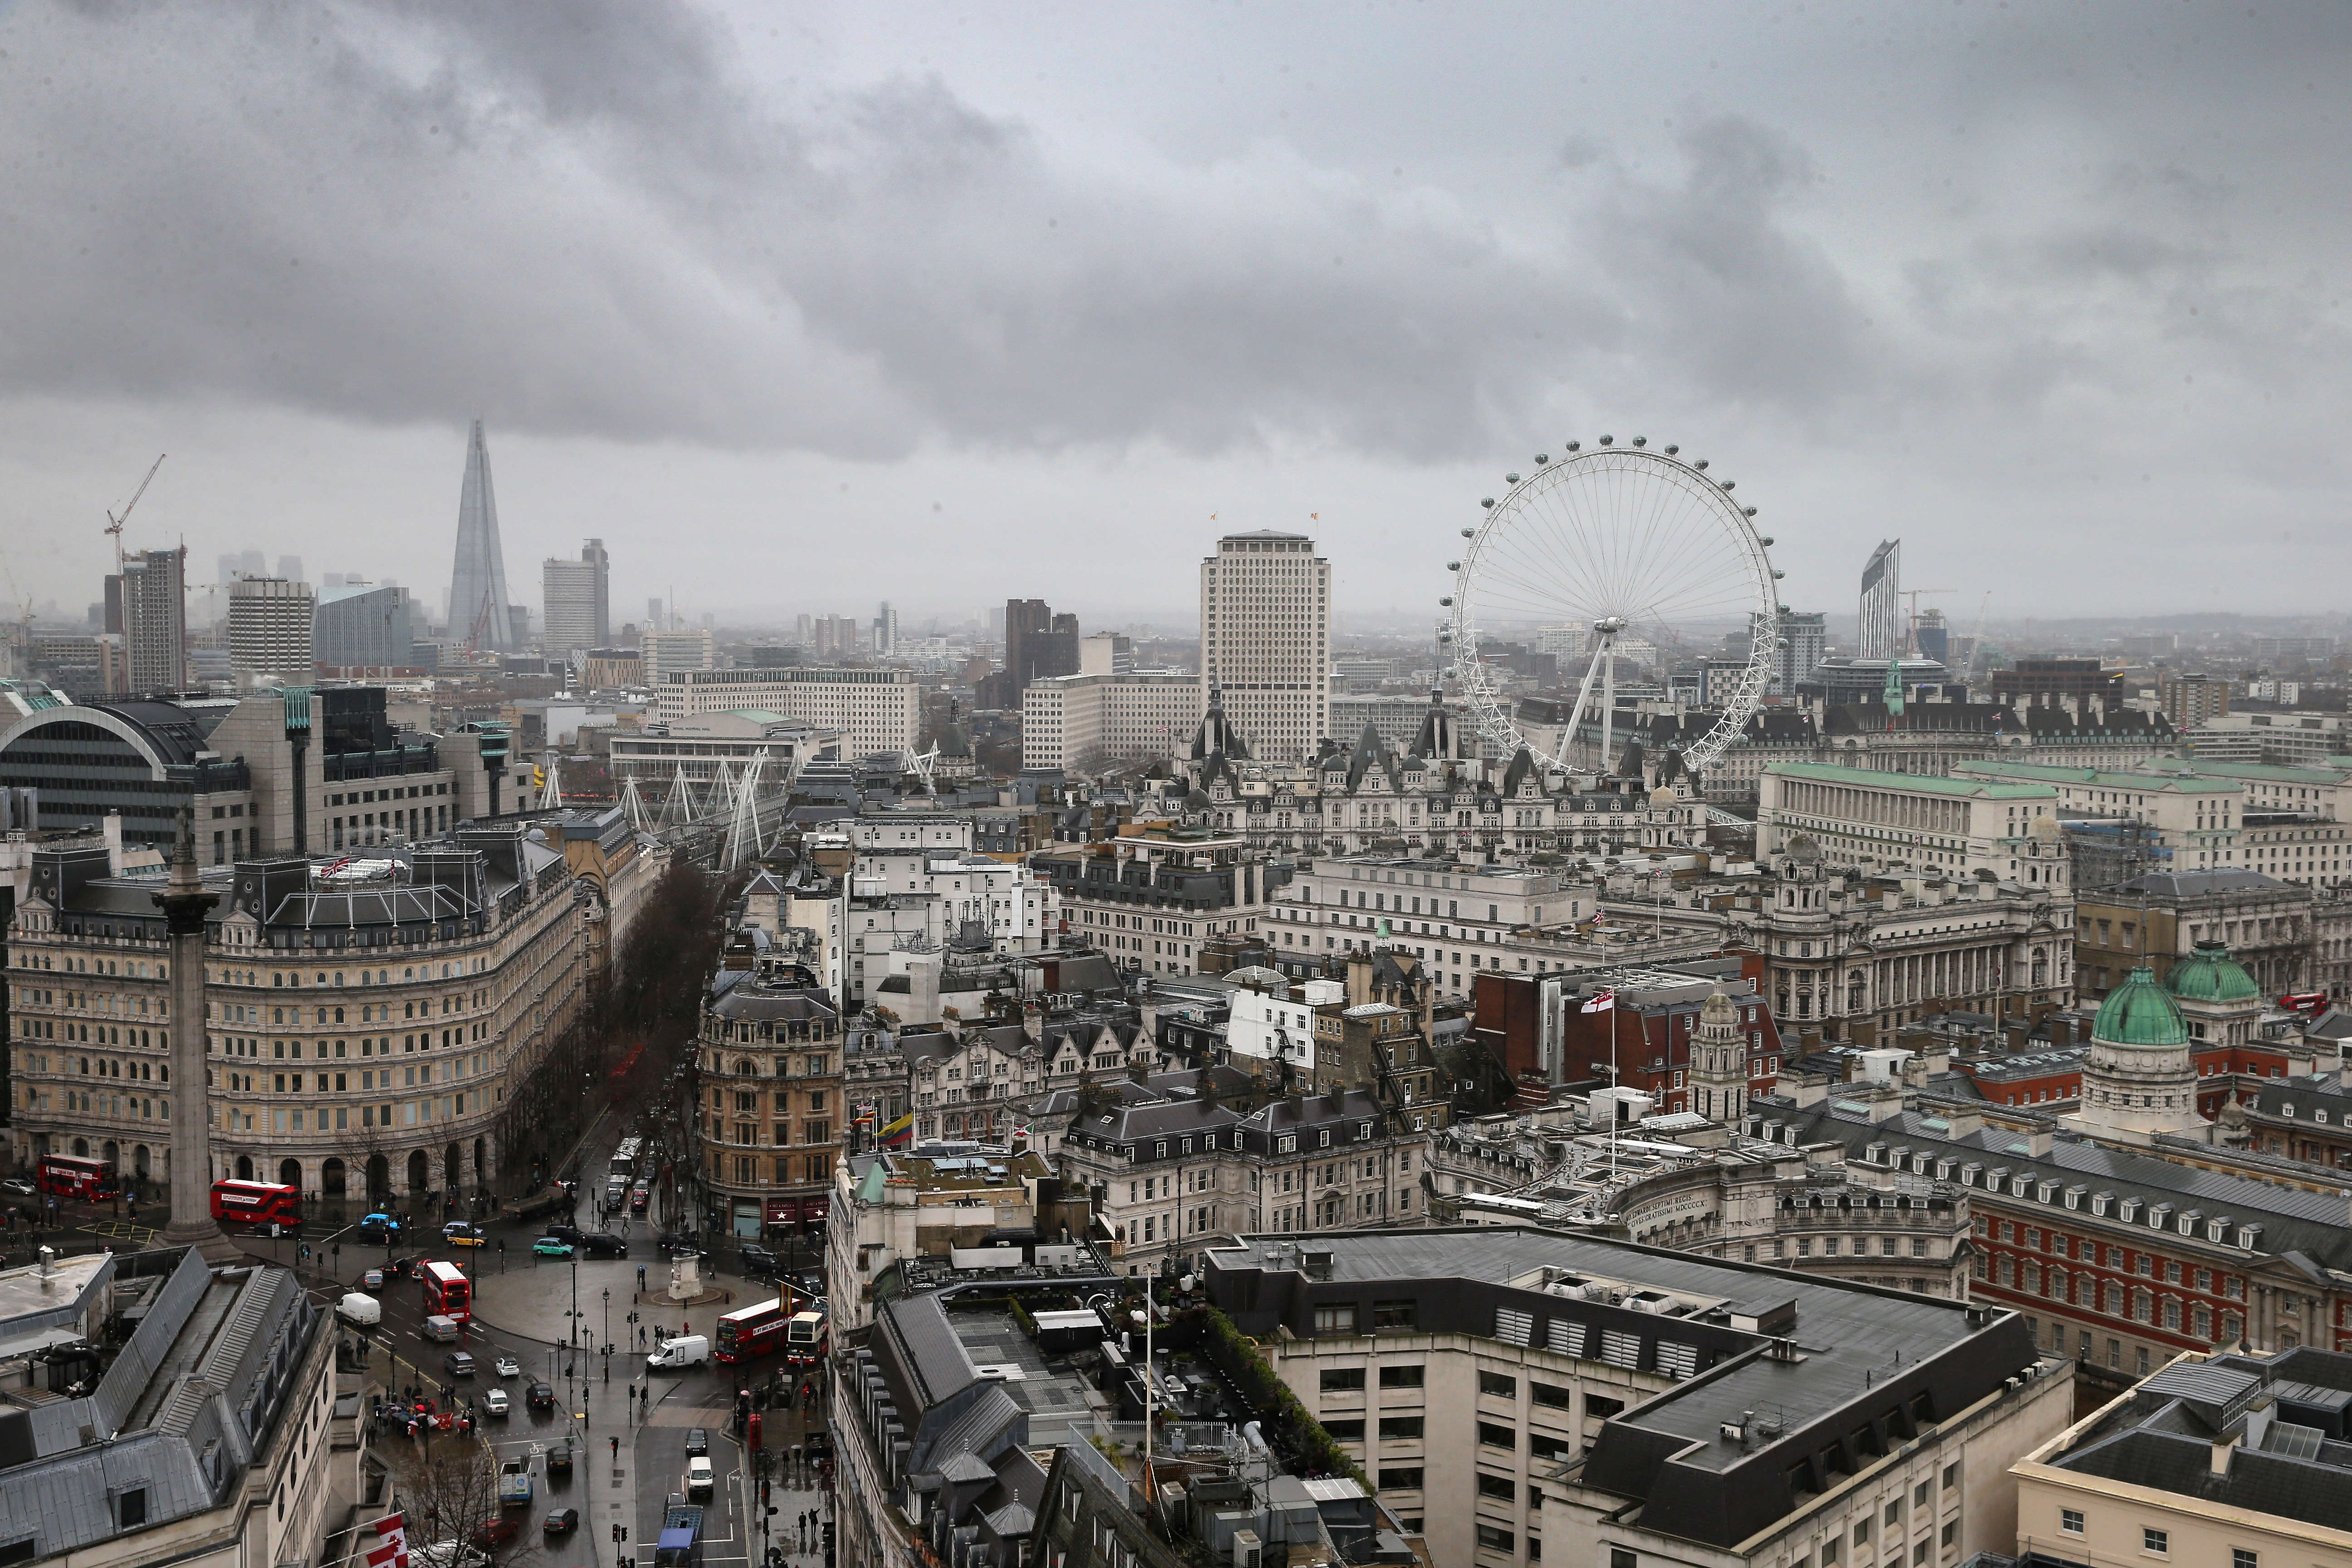 Brexit Has Pushed Thousands Of Londoners To Take This Extreme Action londonsky